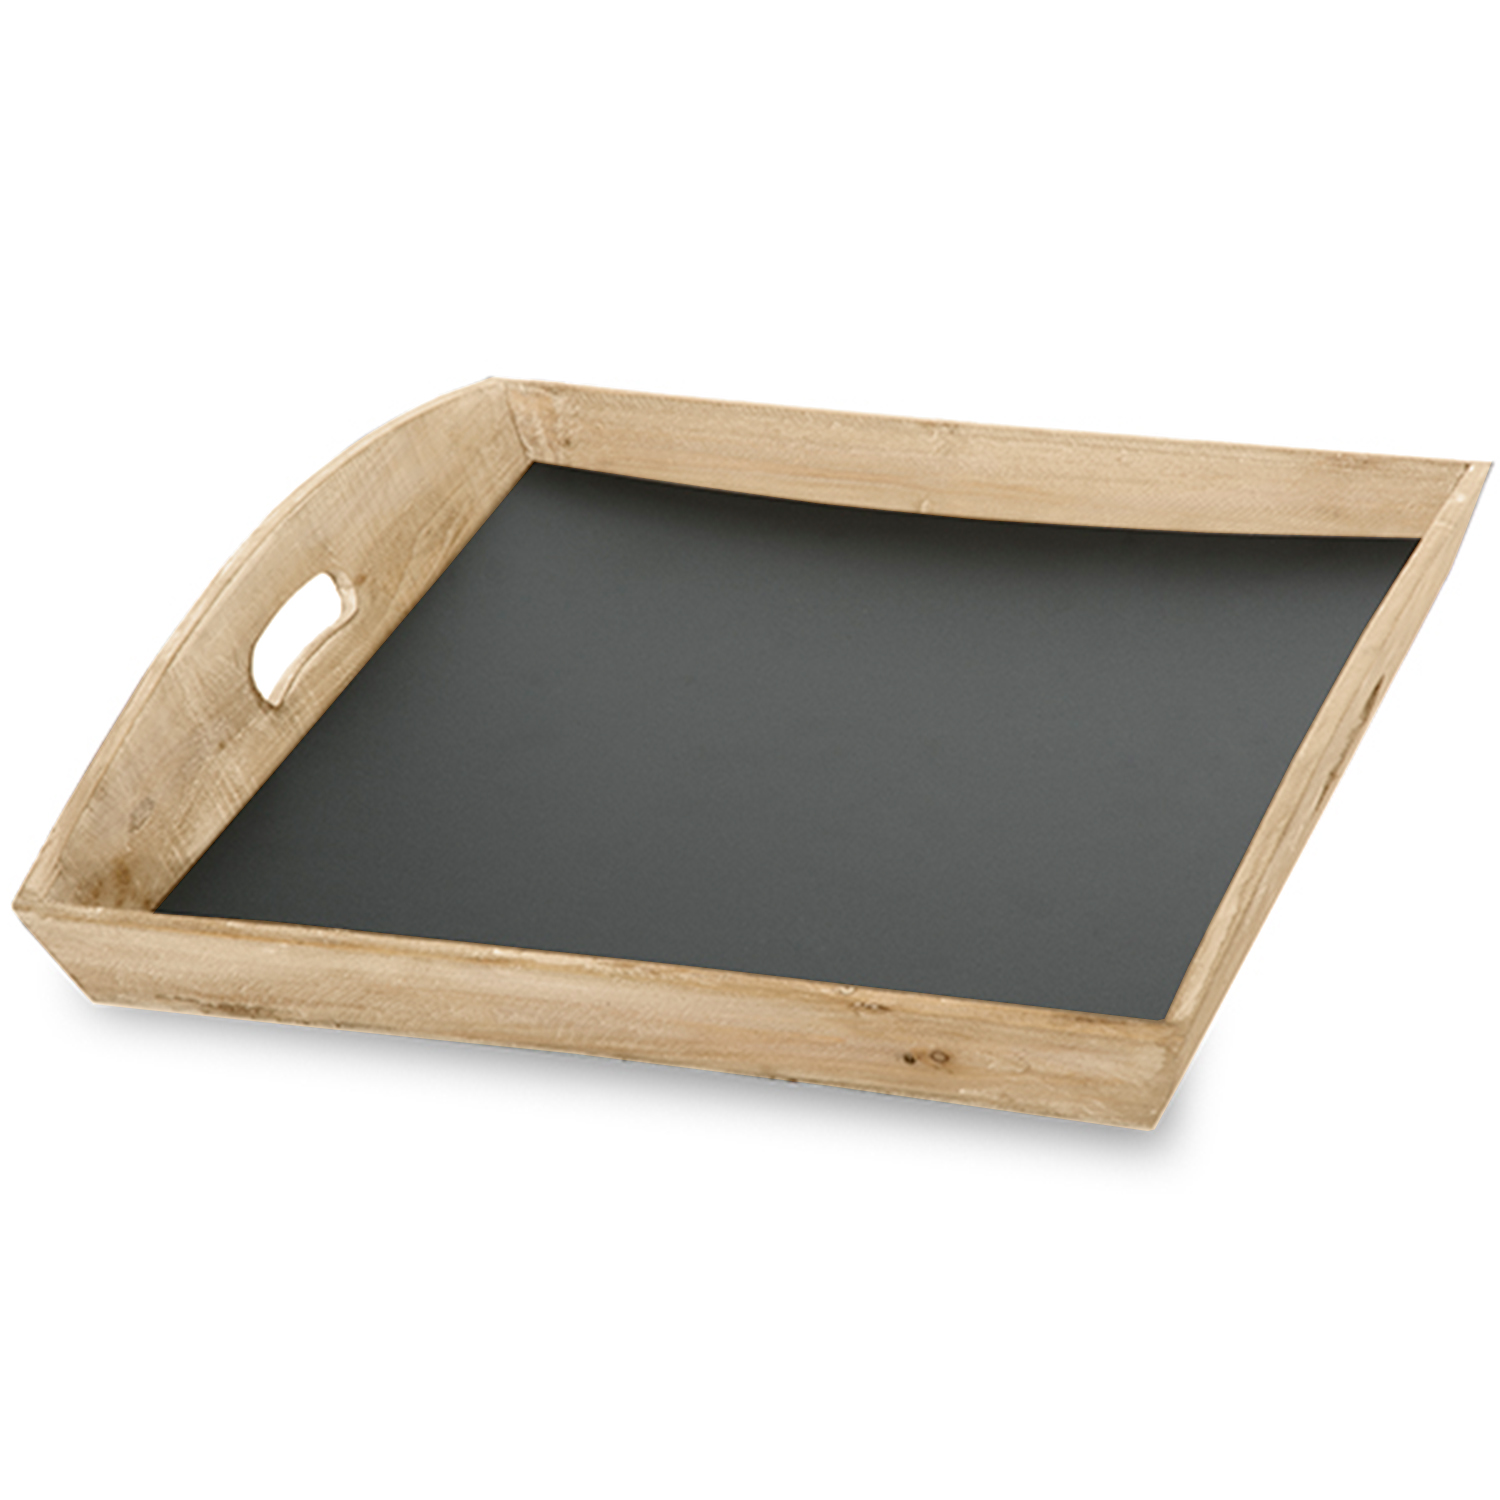 Medium Wooden Square Tray with Chalkboard Bottom 16in